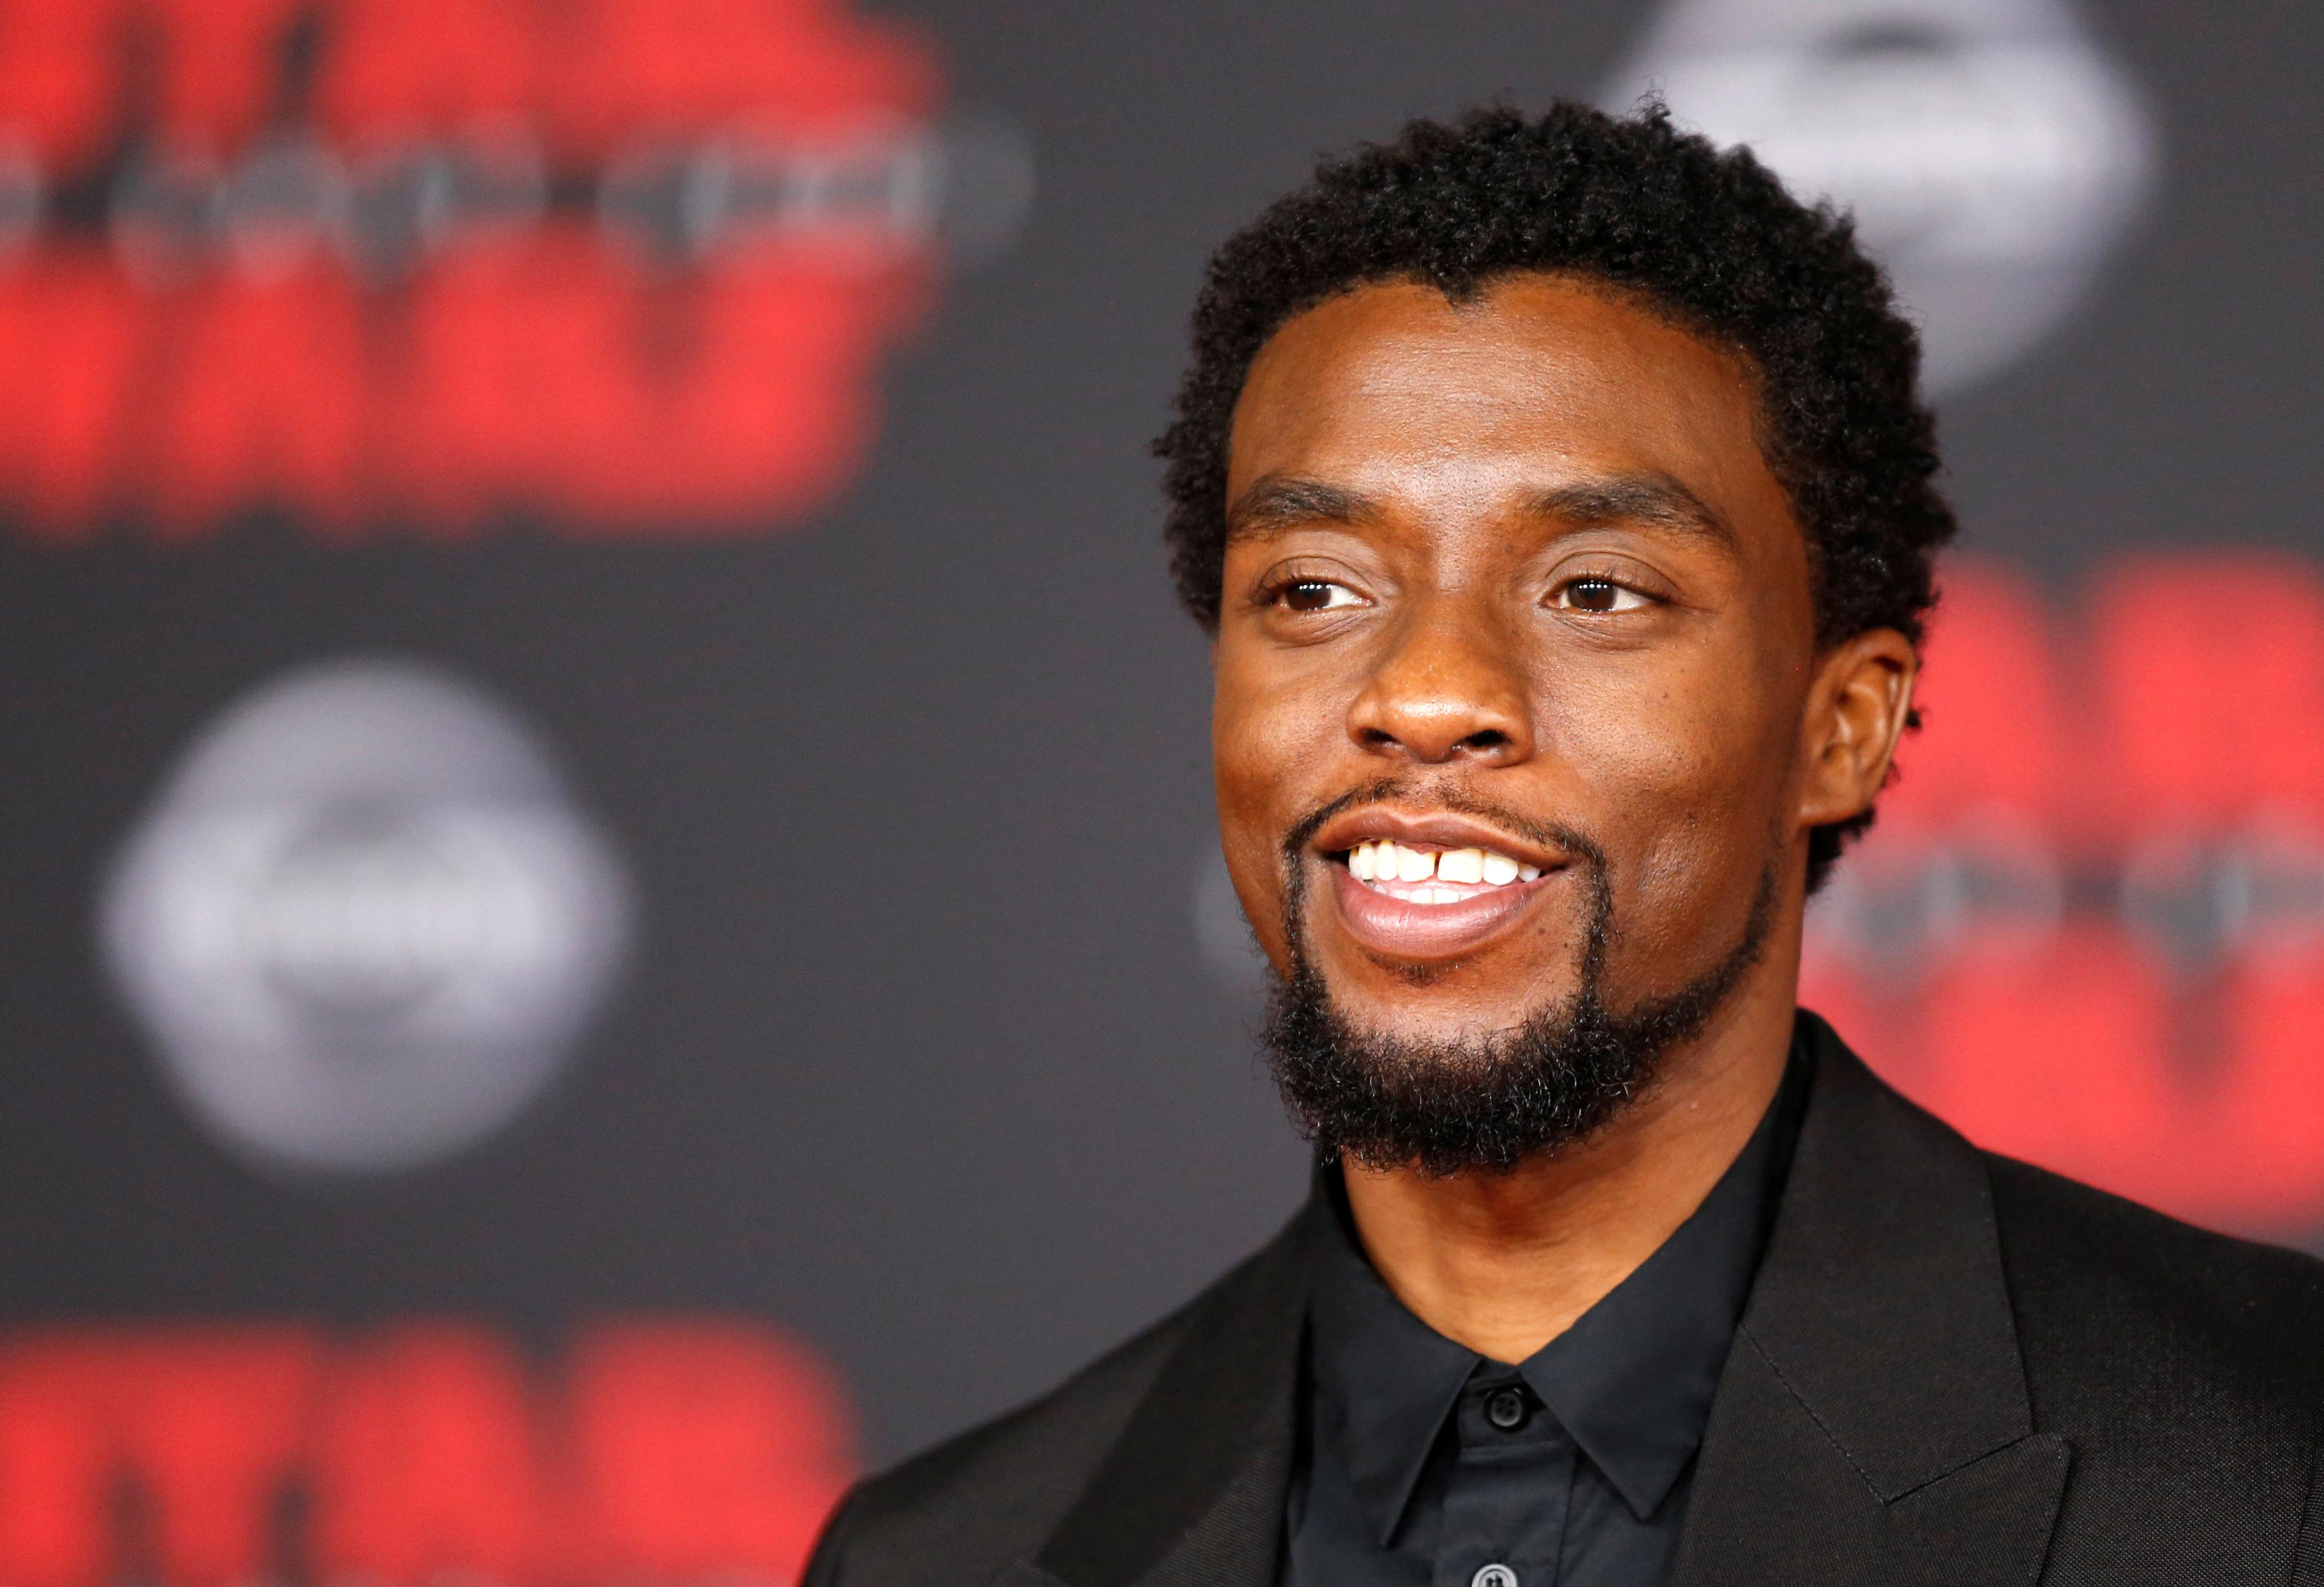 Black Panther' film star Chadwick Boseman dead at 43, after cancer battle -  Reuters